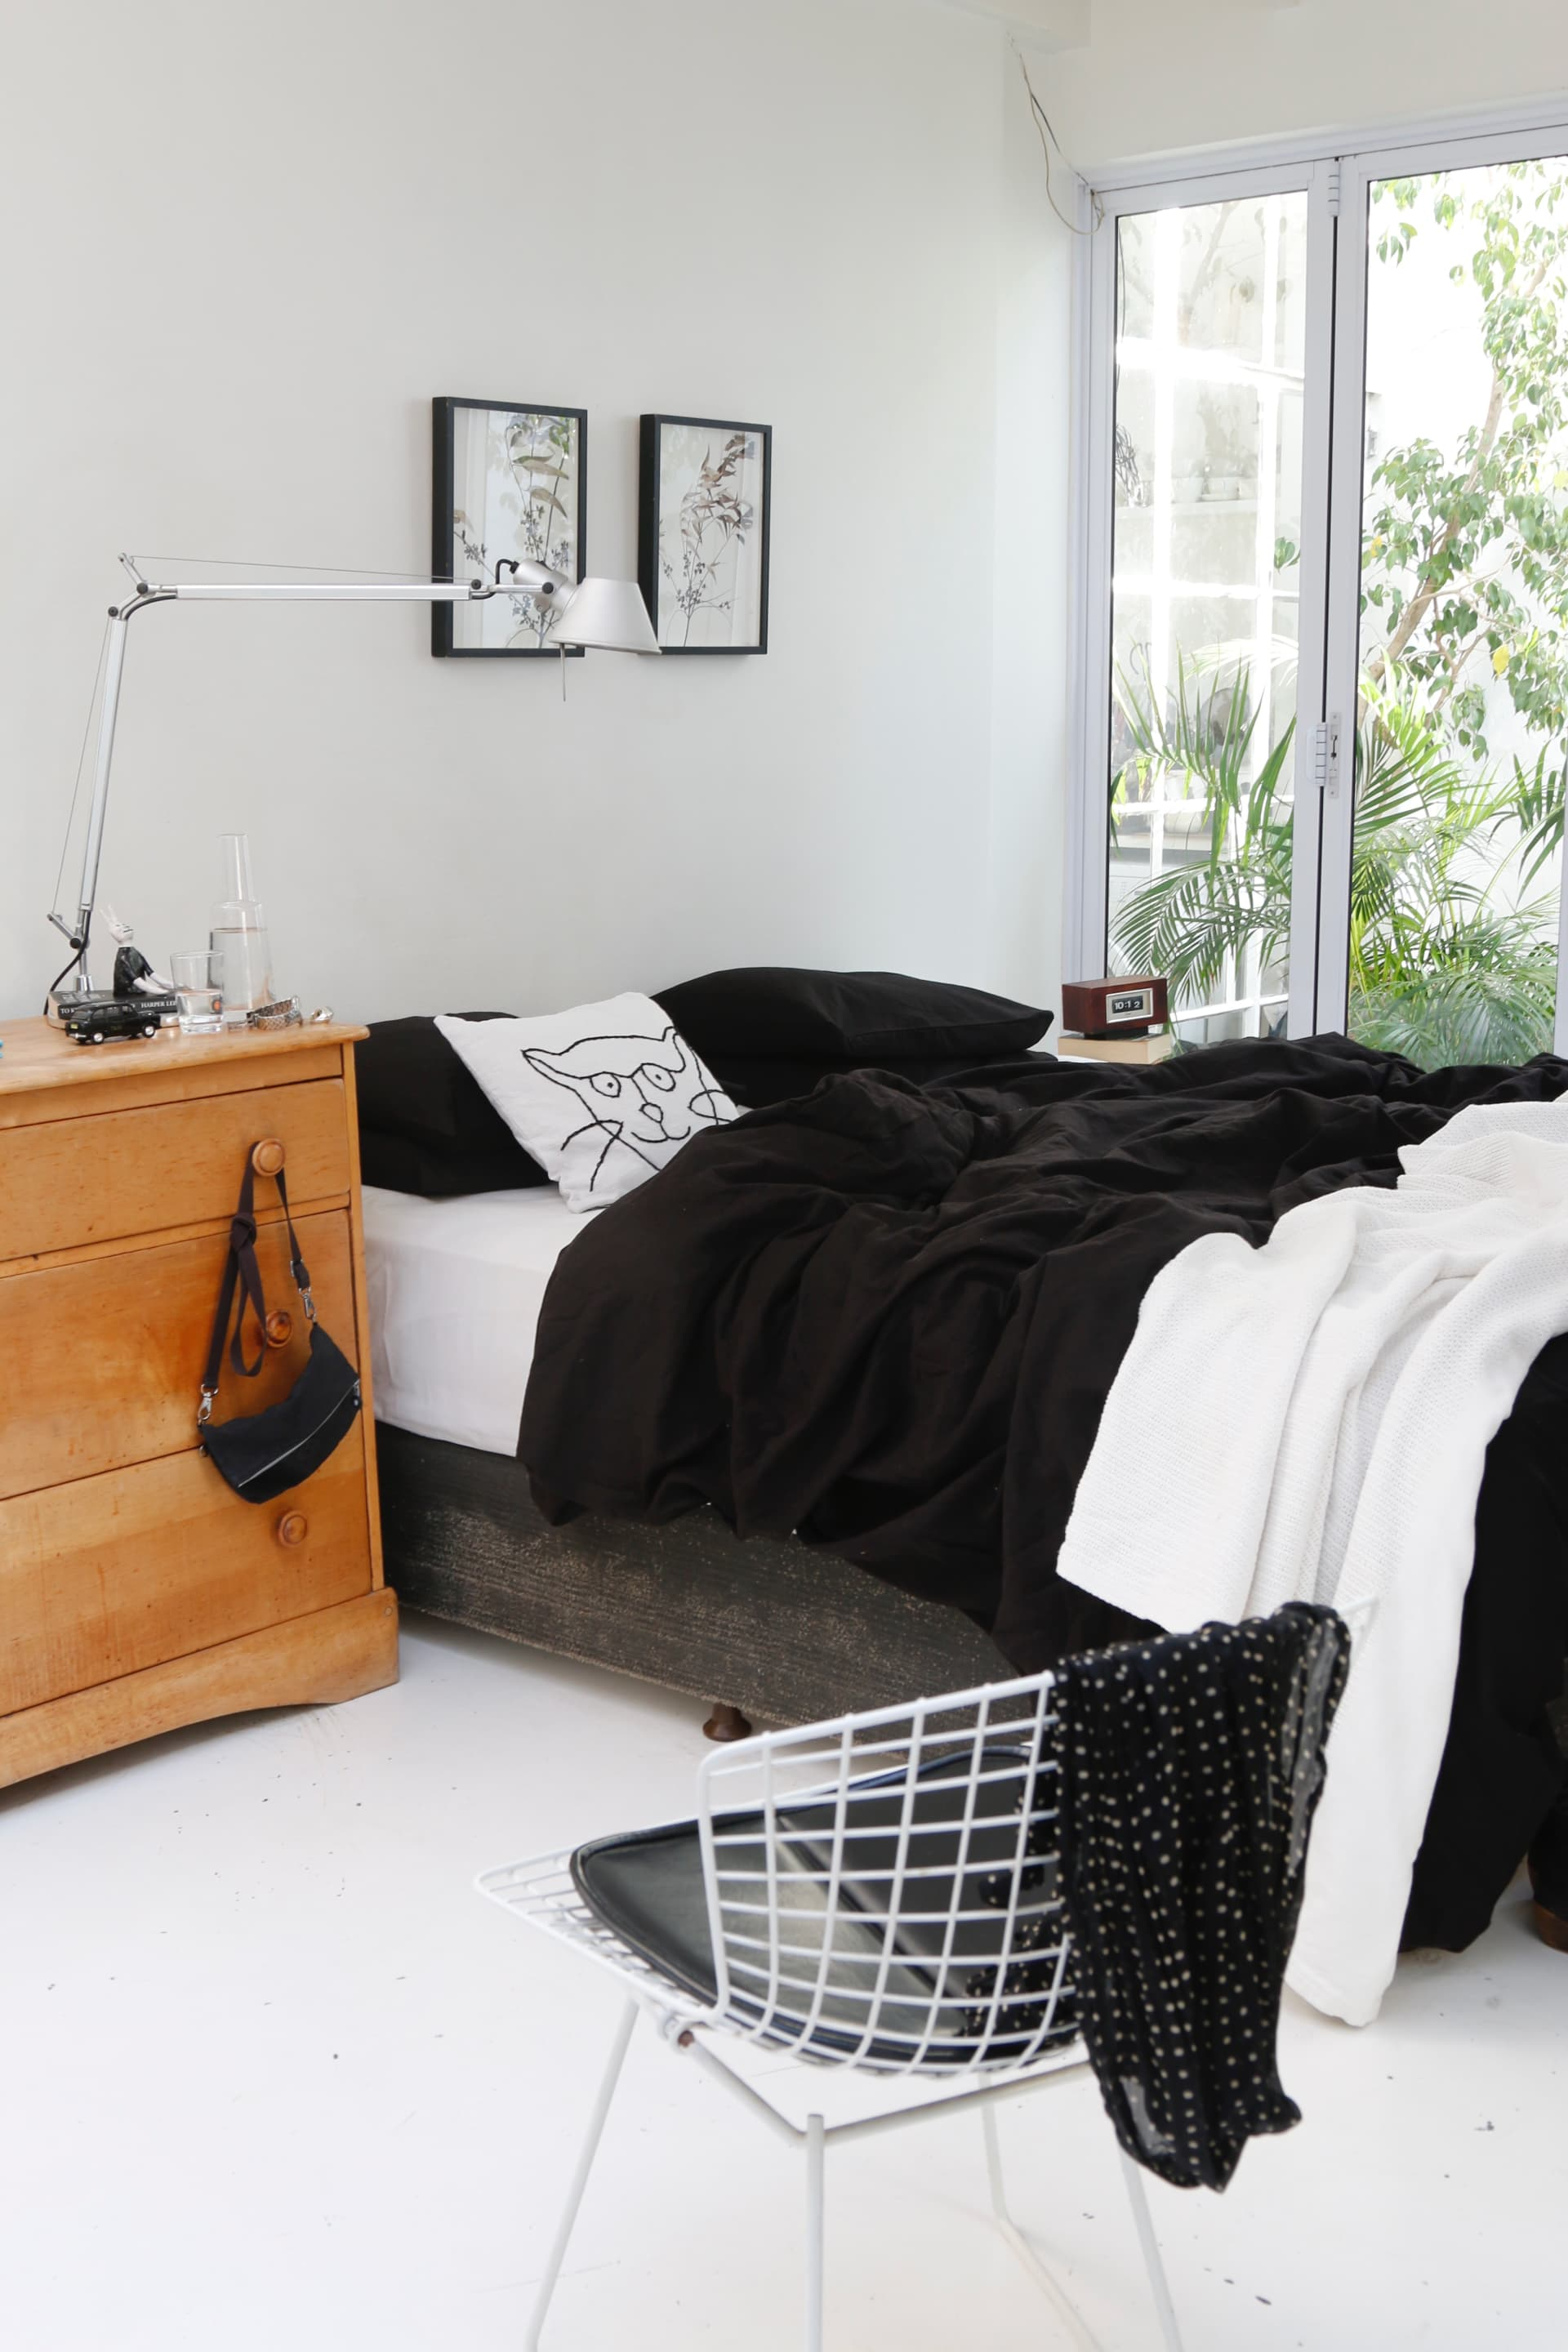 Black hemp bed linen and asimple cedarwood chestare theonly contrast in this all-white bedroom which looks out onto a small leafy urban courtyard.